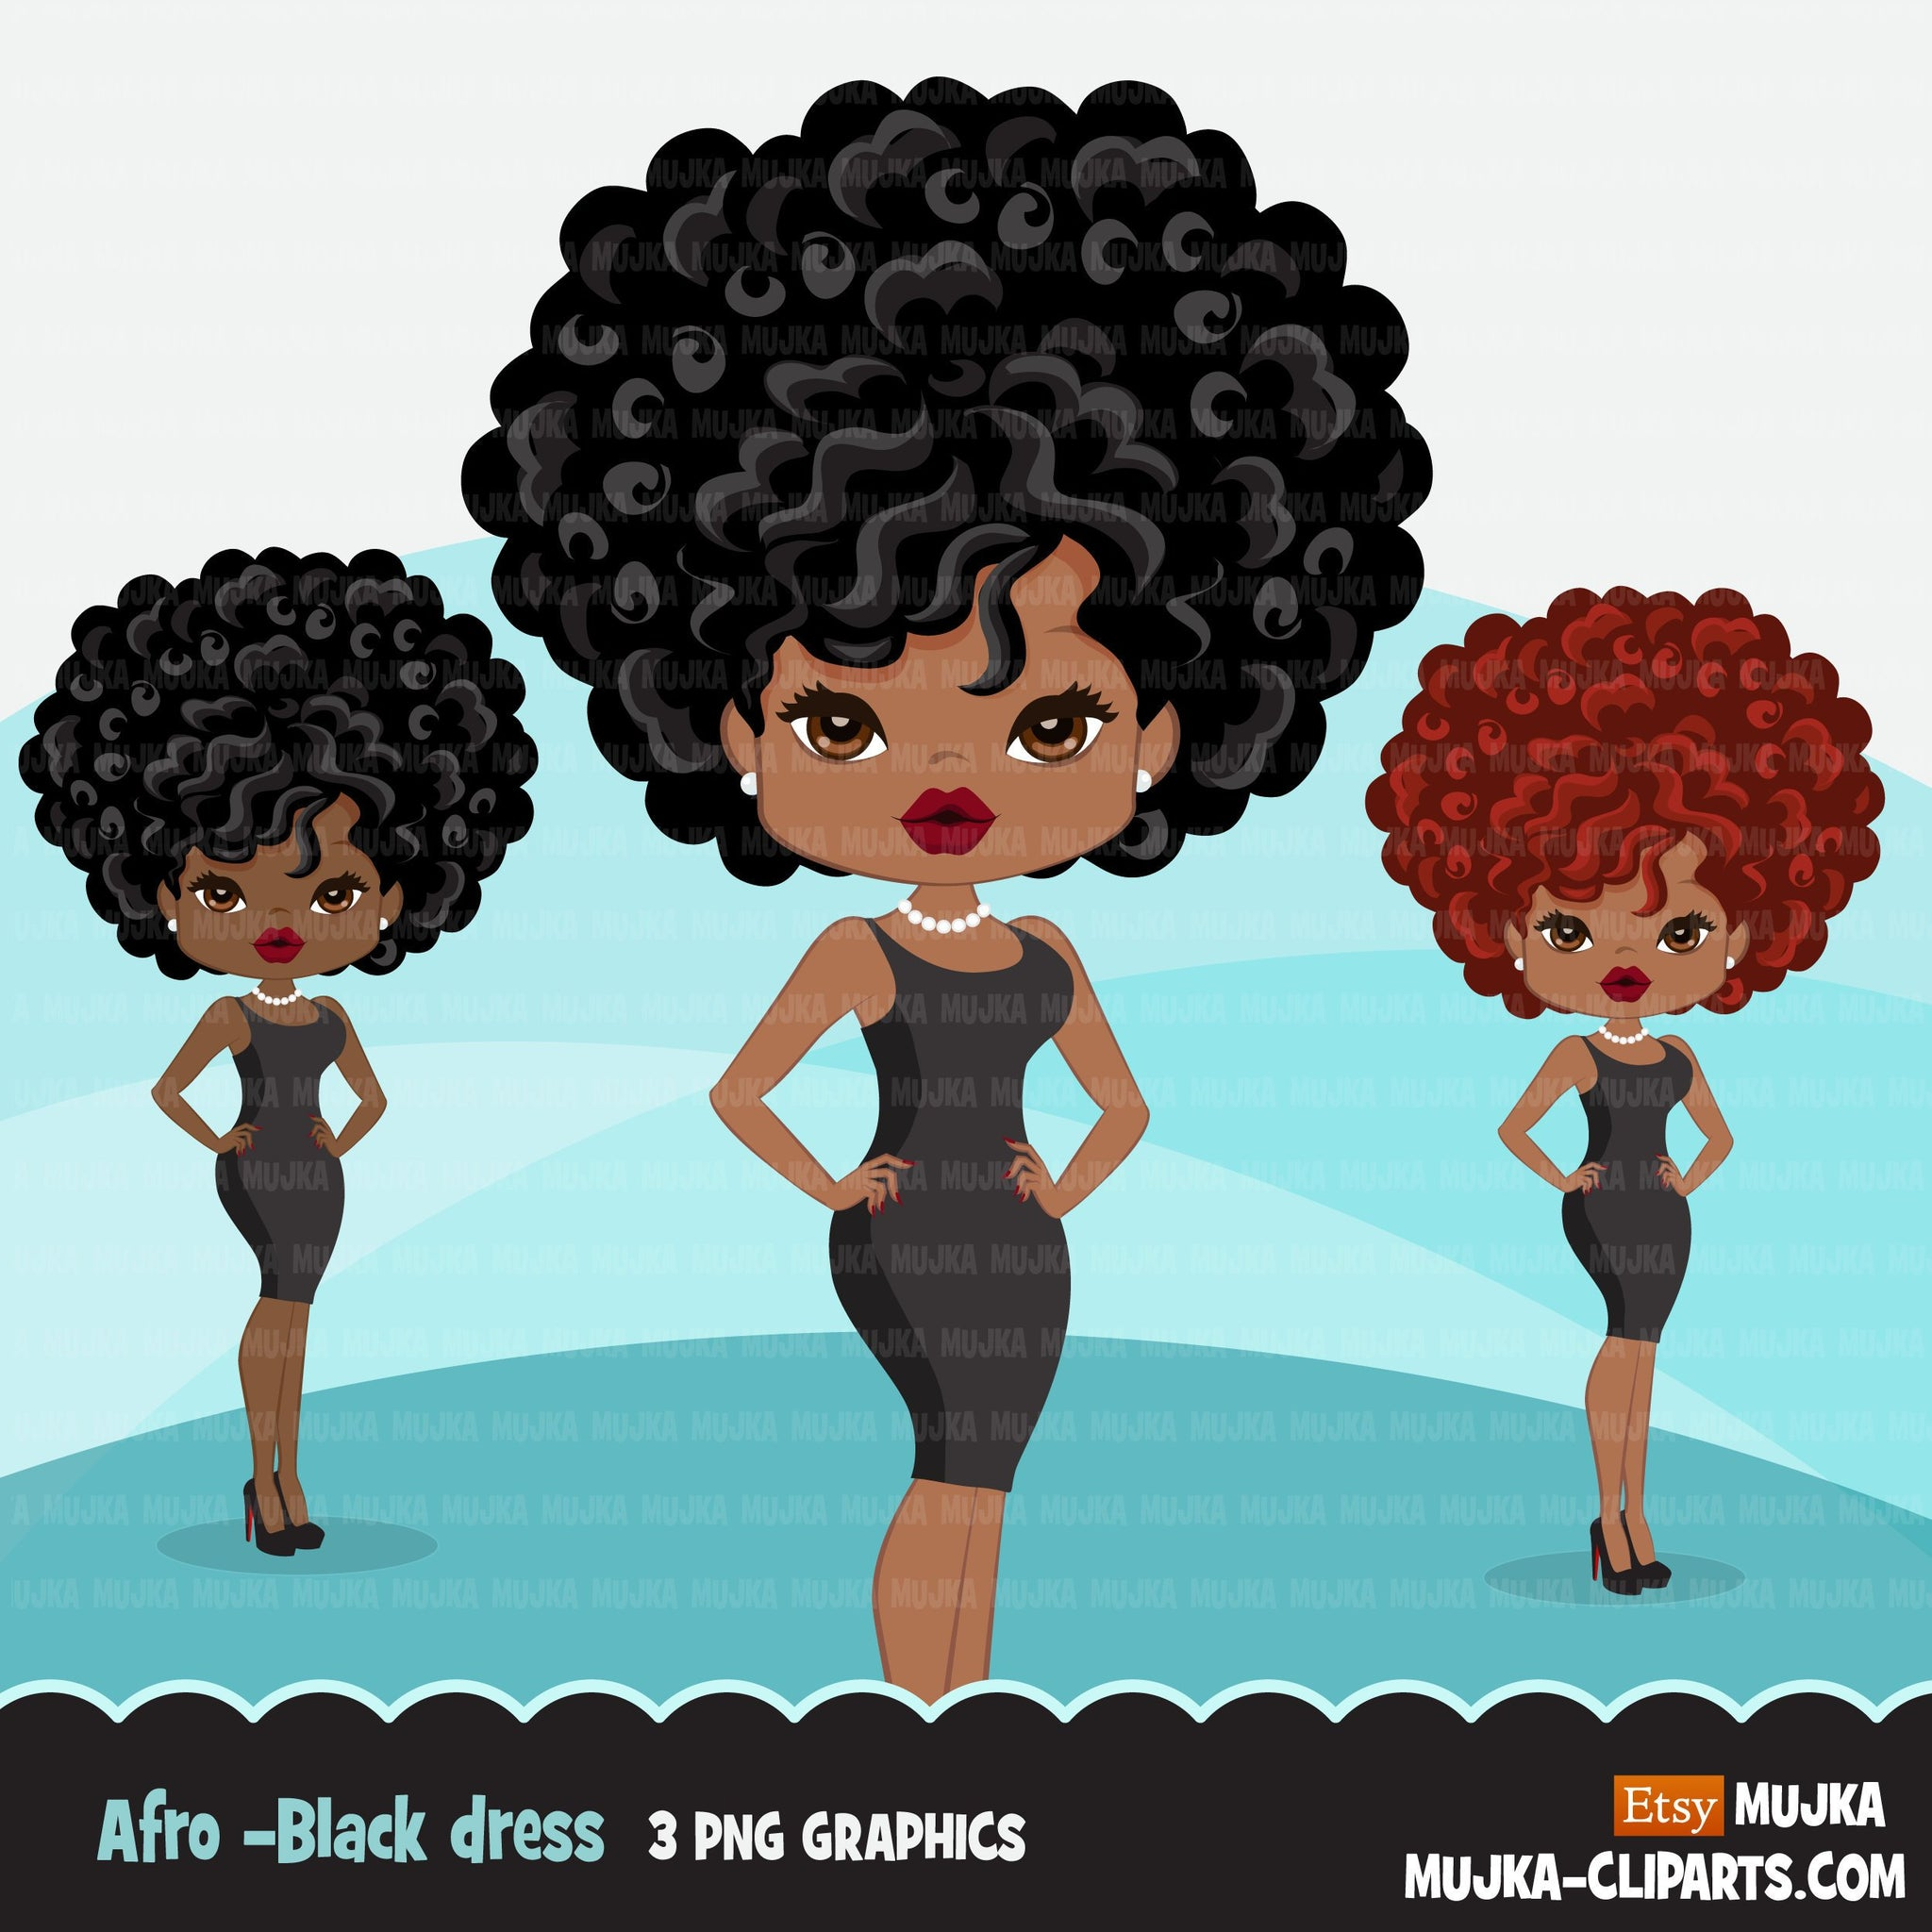 Afro black woman clipart with black mini dress African-American graphics, print and cut PNG T-Shirt Designs, Black Girls clip art